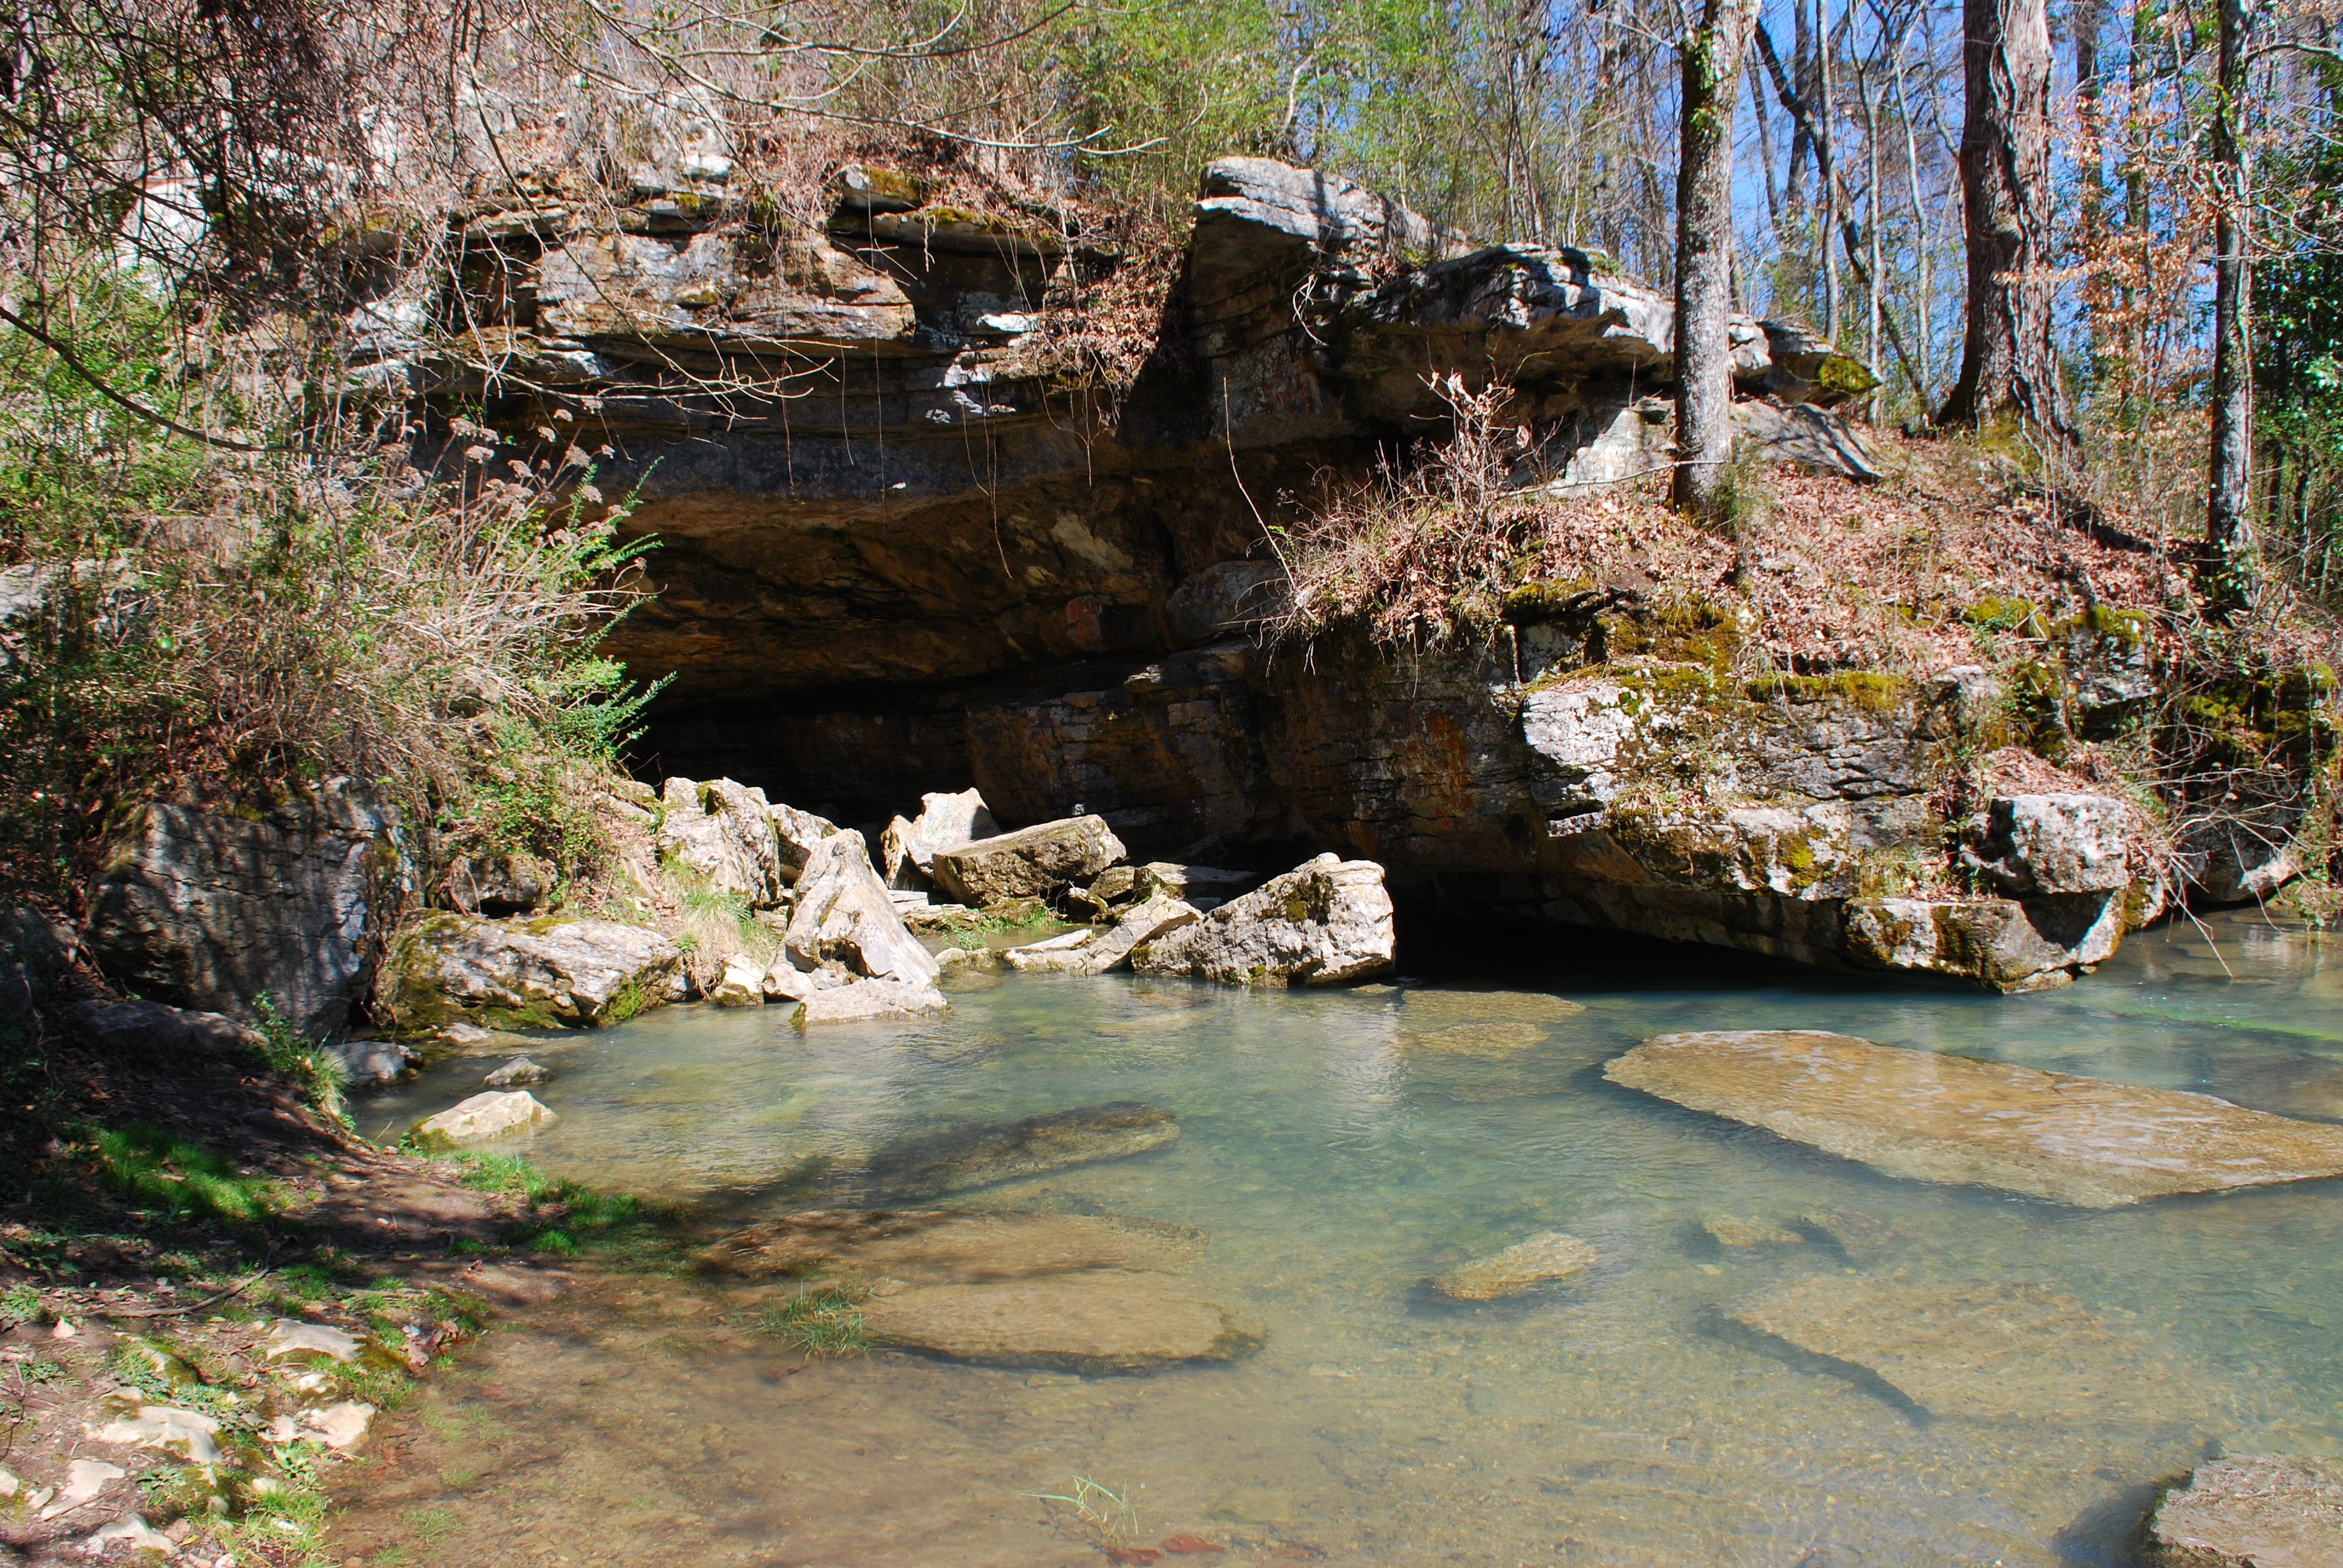 Tennessee marion county sequatchie - Dsc_6393